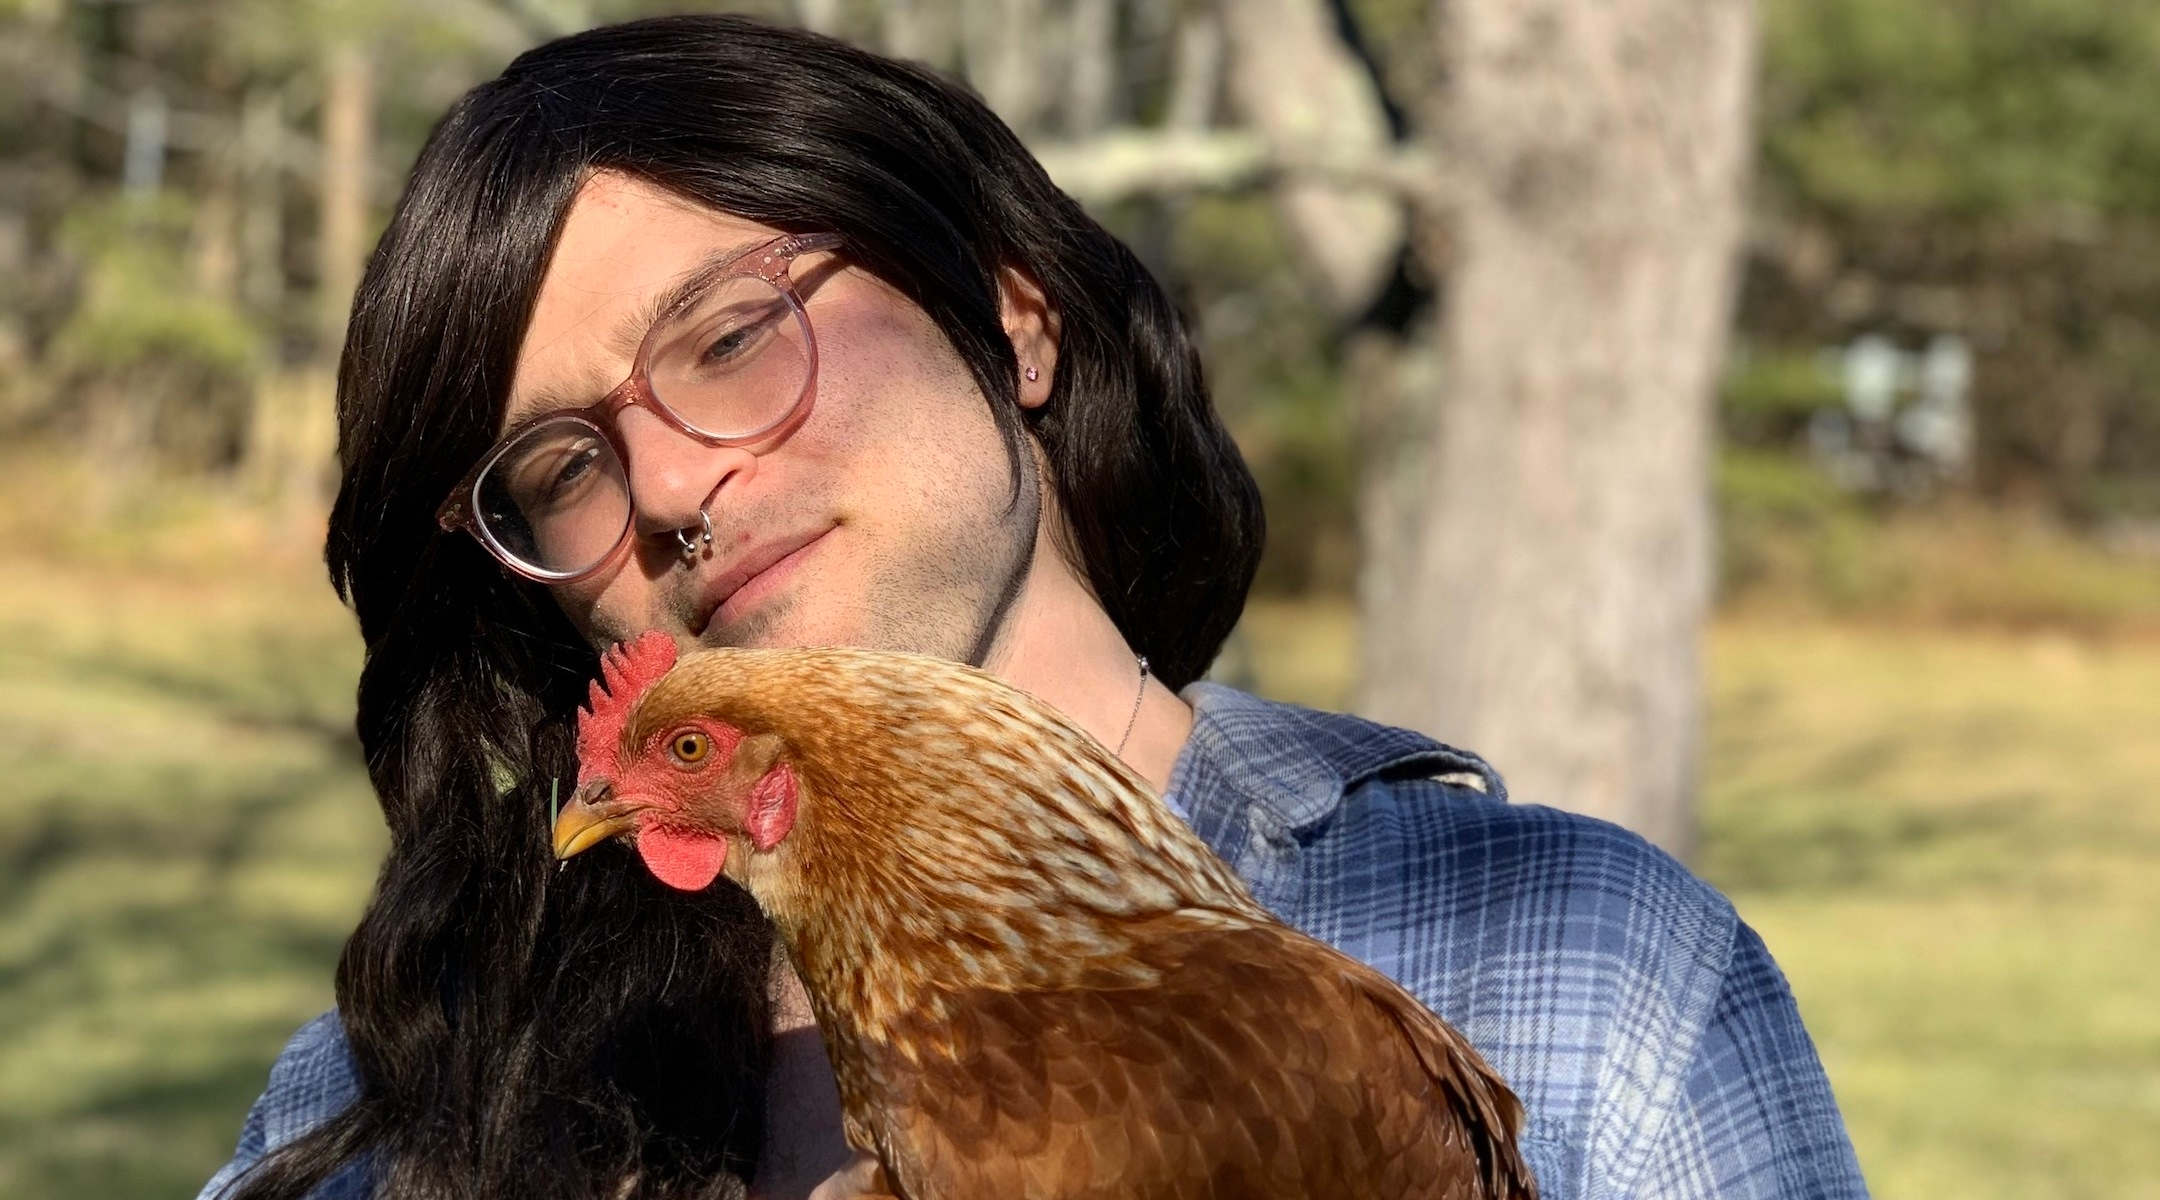 Transgender Jews are finding a safe haven in an unexpected place: the farm